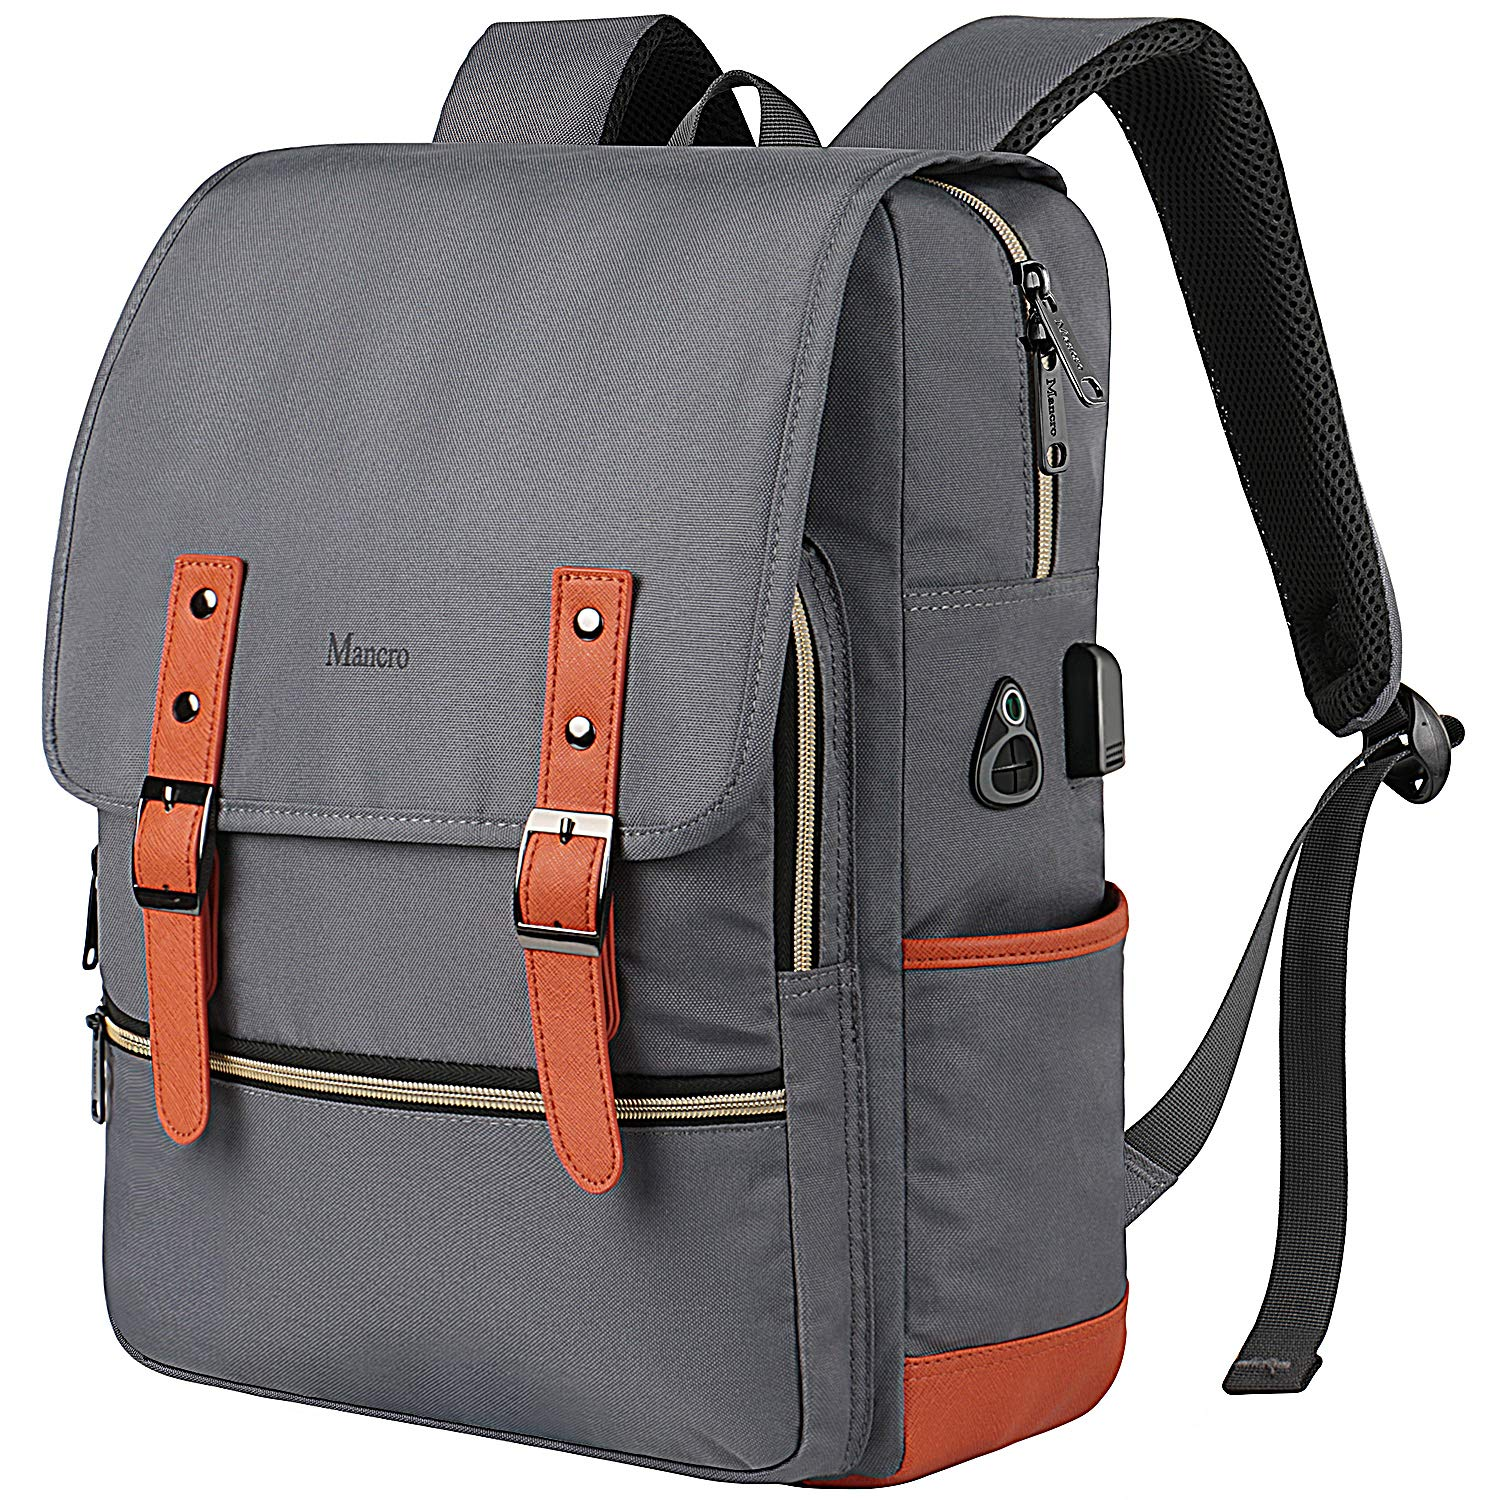 Vintage Laptop Backpack,Waterproof School College Backpack for Women Men with USB Charging Port Mancro Lightweight Travel Bag Fits 15.6 Inch Notebook Grey